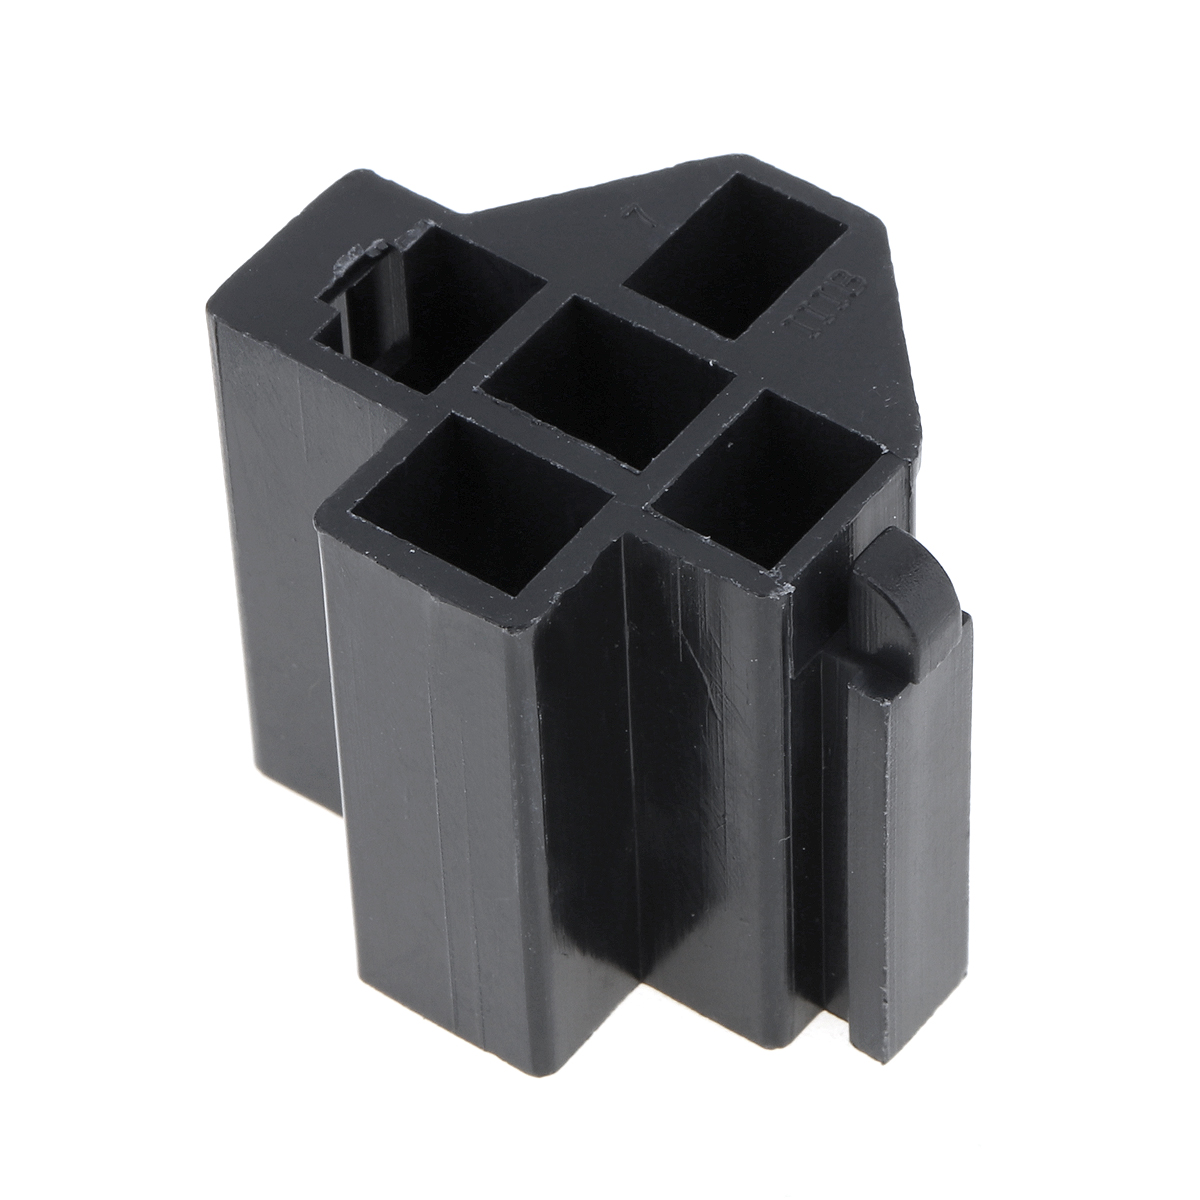 6-3mm-Car-Vehicle-5-Pin-Relay-Socket-Connector-Holder-with-5pcs-Copper-Terminal thumbnail 5